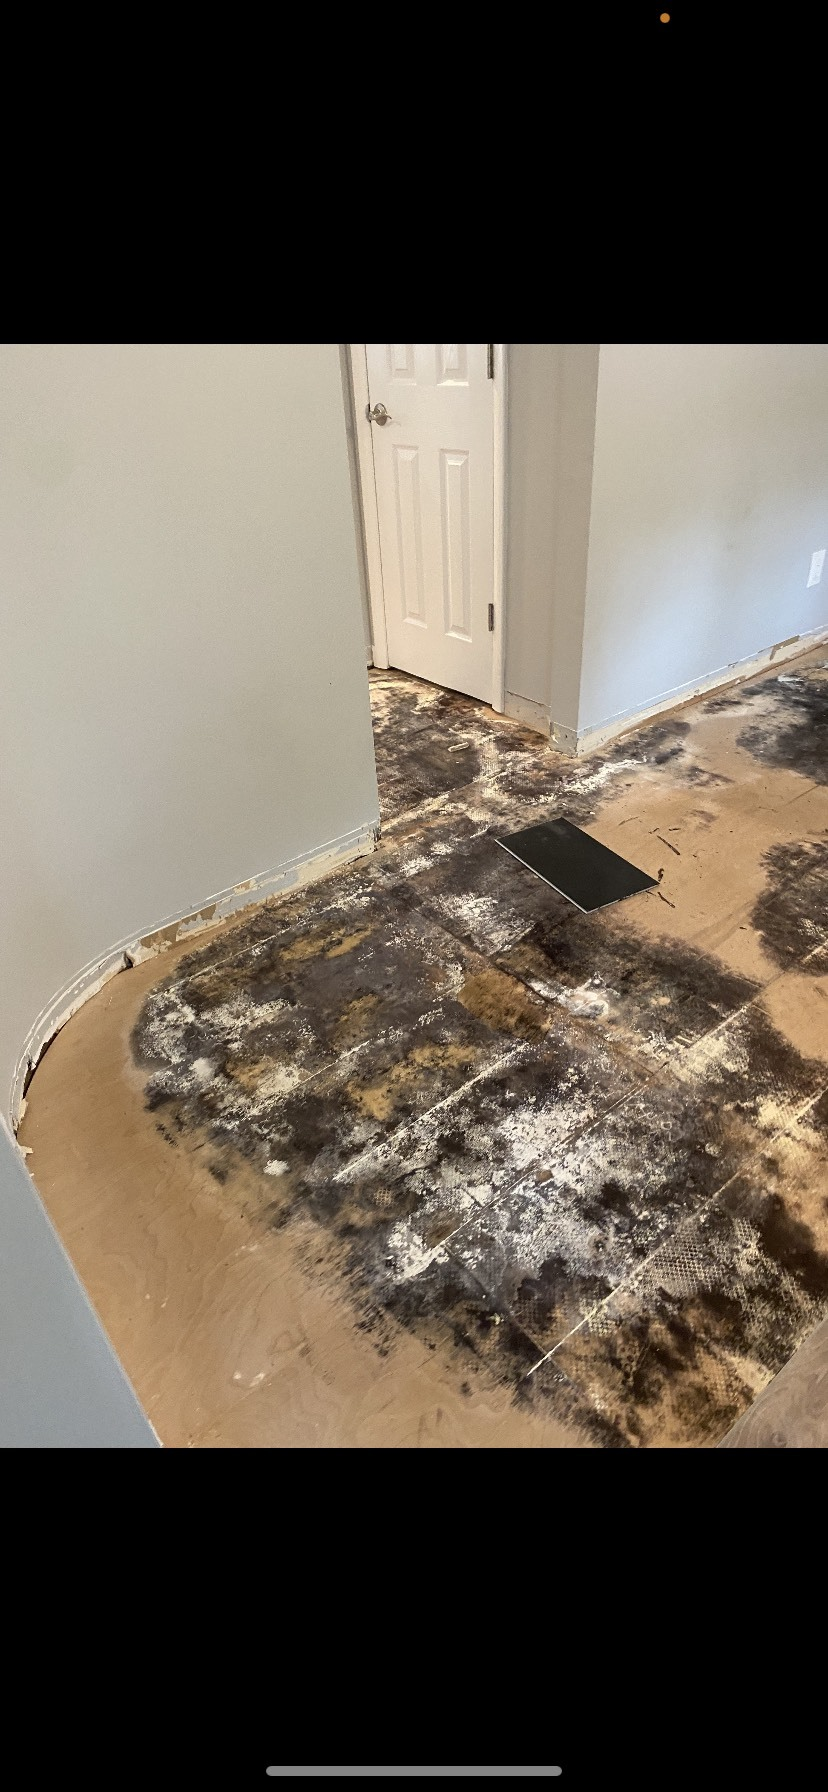 Mold that covers more than a small area typically needs to be dealt with by a professional.